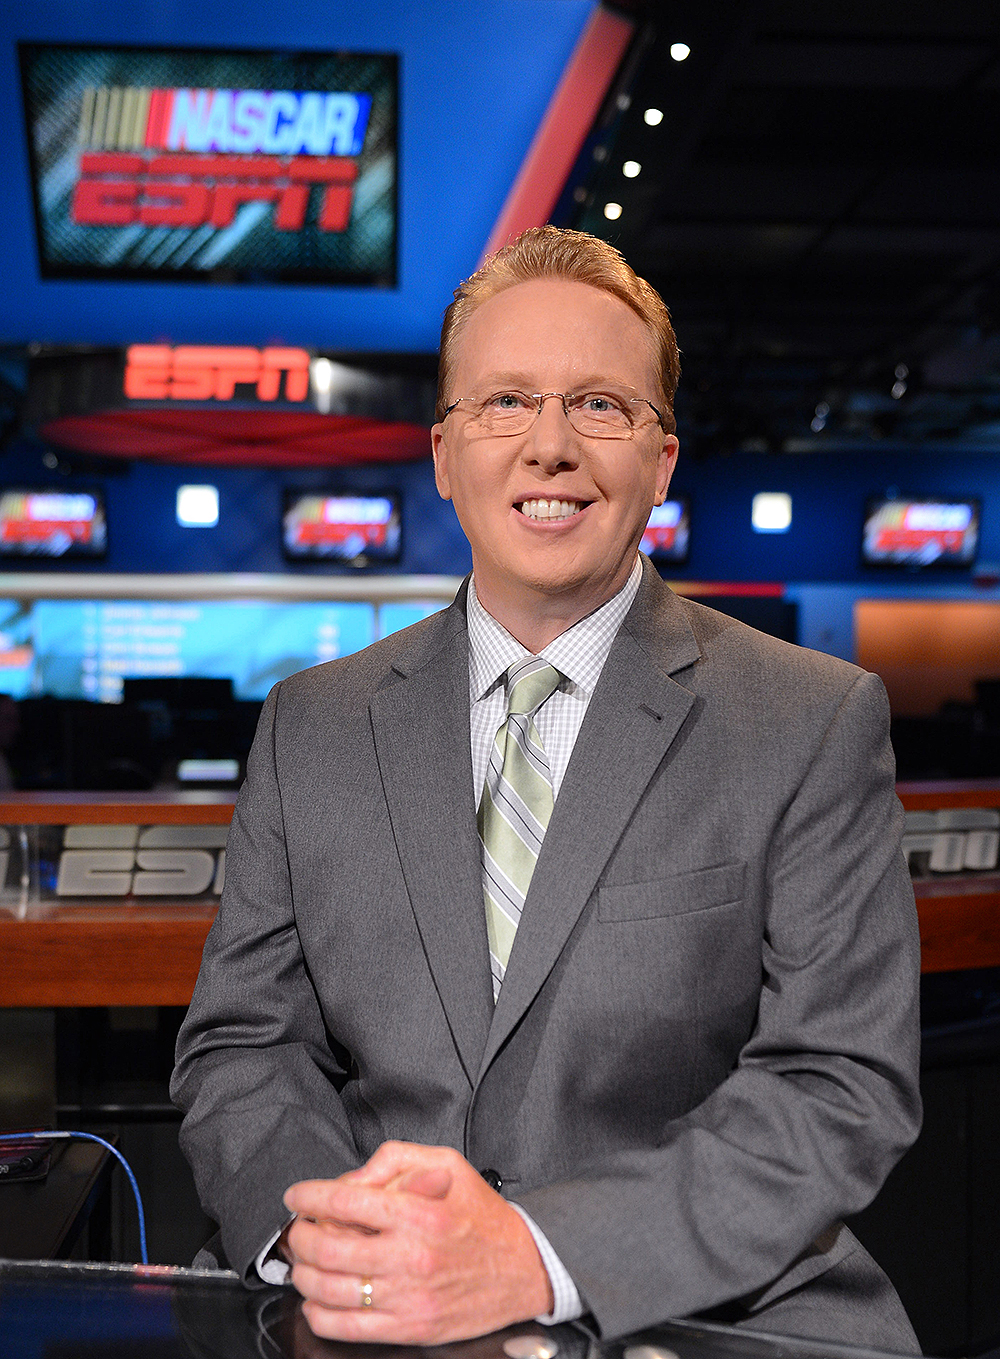 ricky craven to remain with espn as nascar analyst